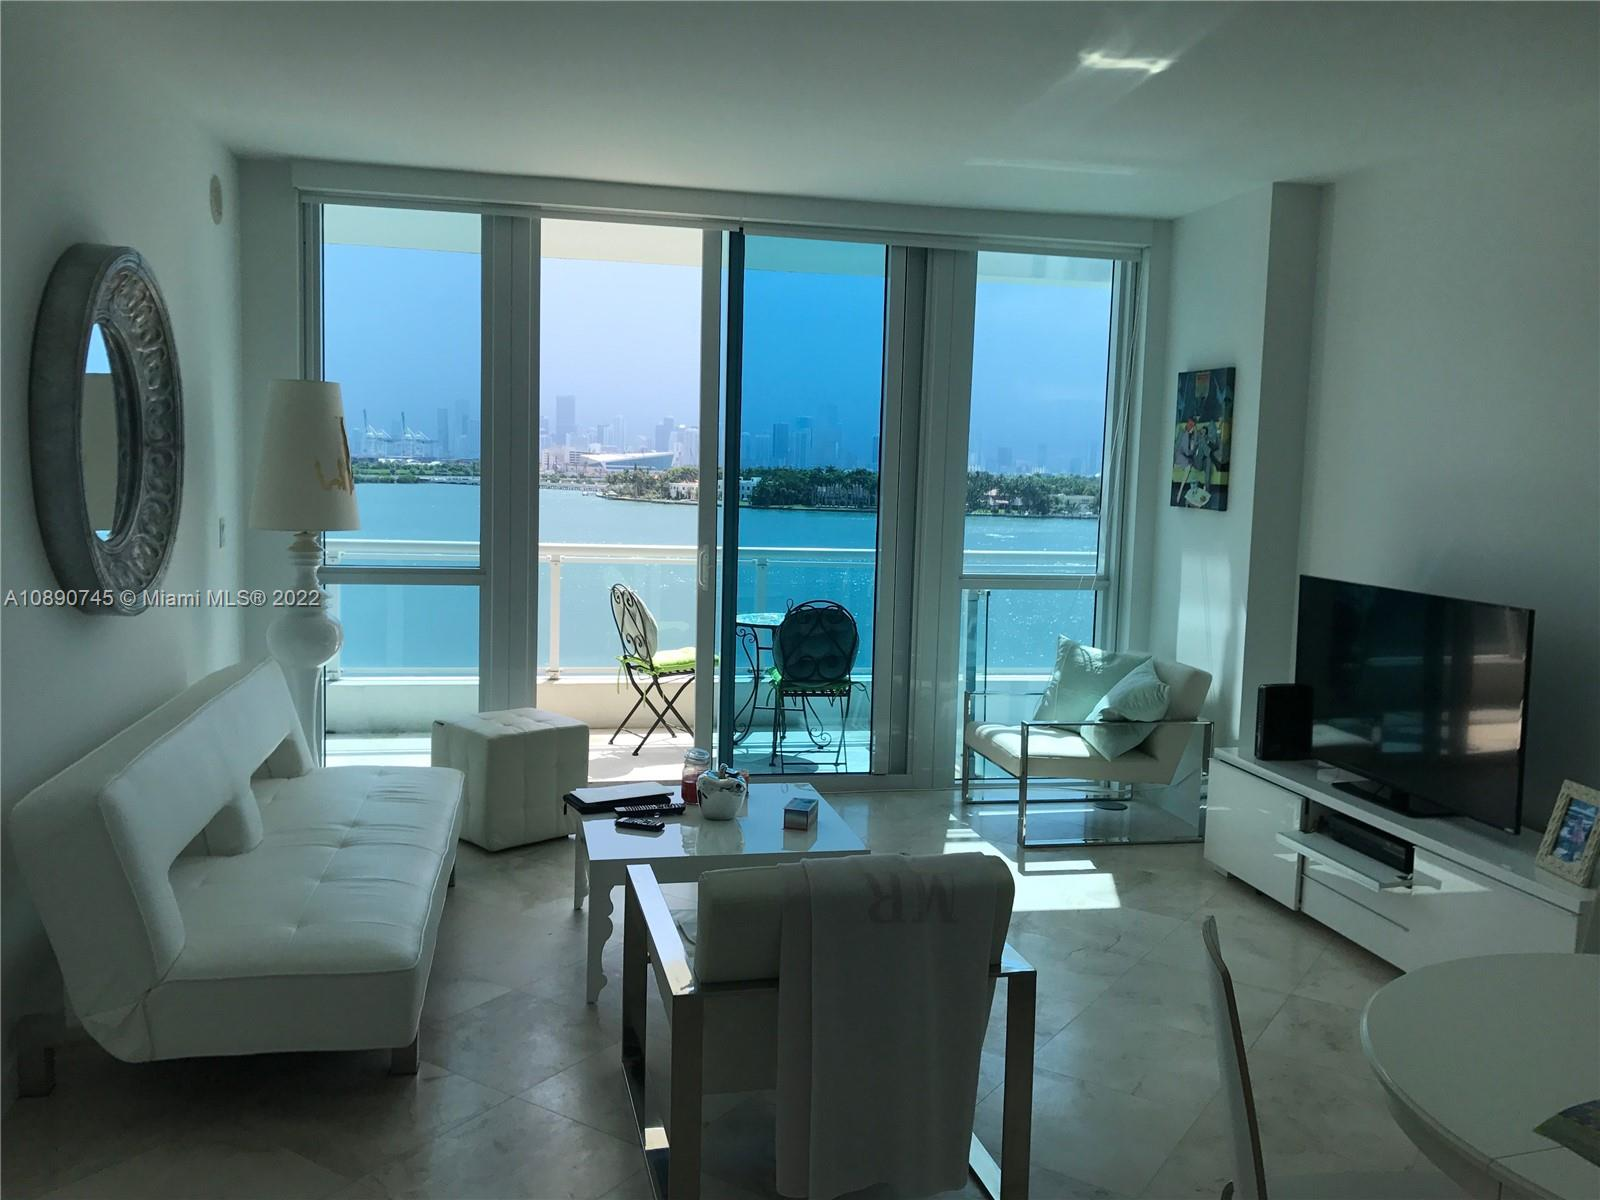 Stunning views from this Bay Front 1 Bed/1 Bath at the Iconic Bentley Bay, incredible and unique  views of Biscayne Bay, the Downtown skyline, and watch cruise ships sail out to sea.white marble floor , Italian marble countertops, stainless steel appliances, custom built-in cabinetry and floor-to-ceiling windows. The large master suite & terrace overlooks Biscayne Bay & Master Bath features a glass-enclosed shower and stand-alone tub. , marble bathrooms, large private balcony, and floor-to-ceiling windows offering an abundance of natural light. everything Bentley Bay has offer including an infinity edge swimming pool, a lush landscaped pool deck, fitness center & spa, 24-hour security, reserved and valet parking.Easy to show call listing agent